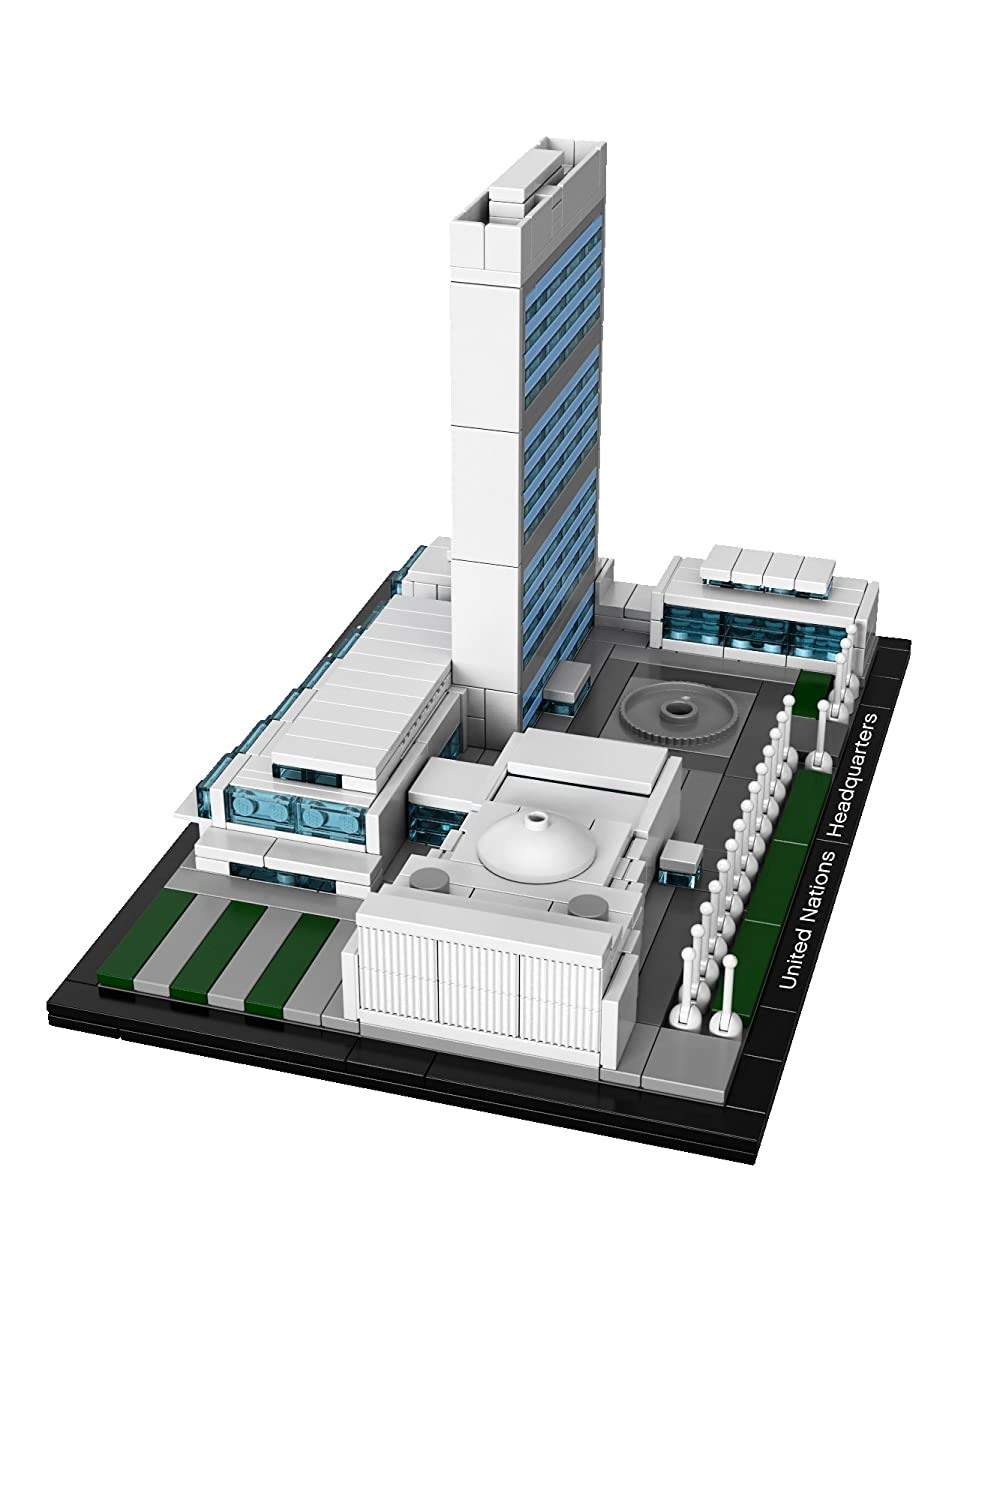 Lego architecture united nations headquarters new free shipping ebay for Lego architecture new york